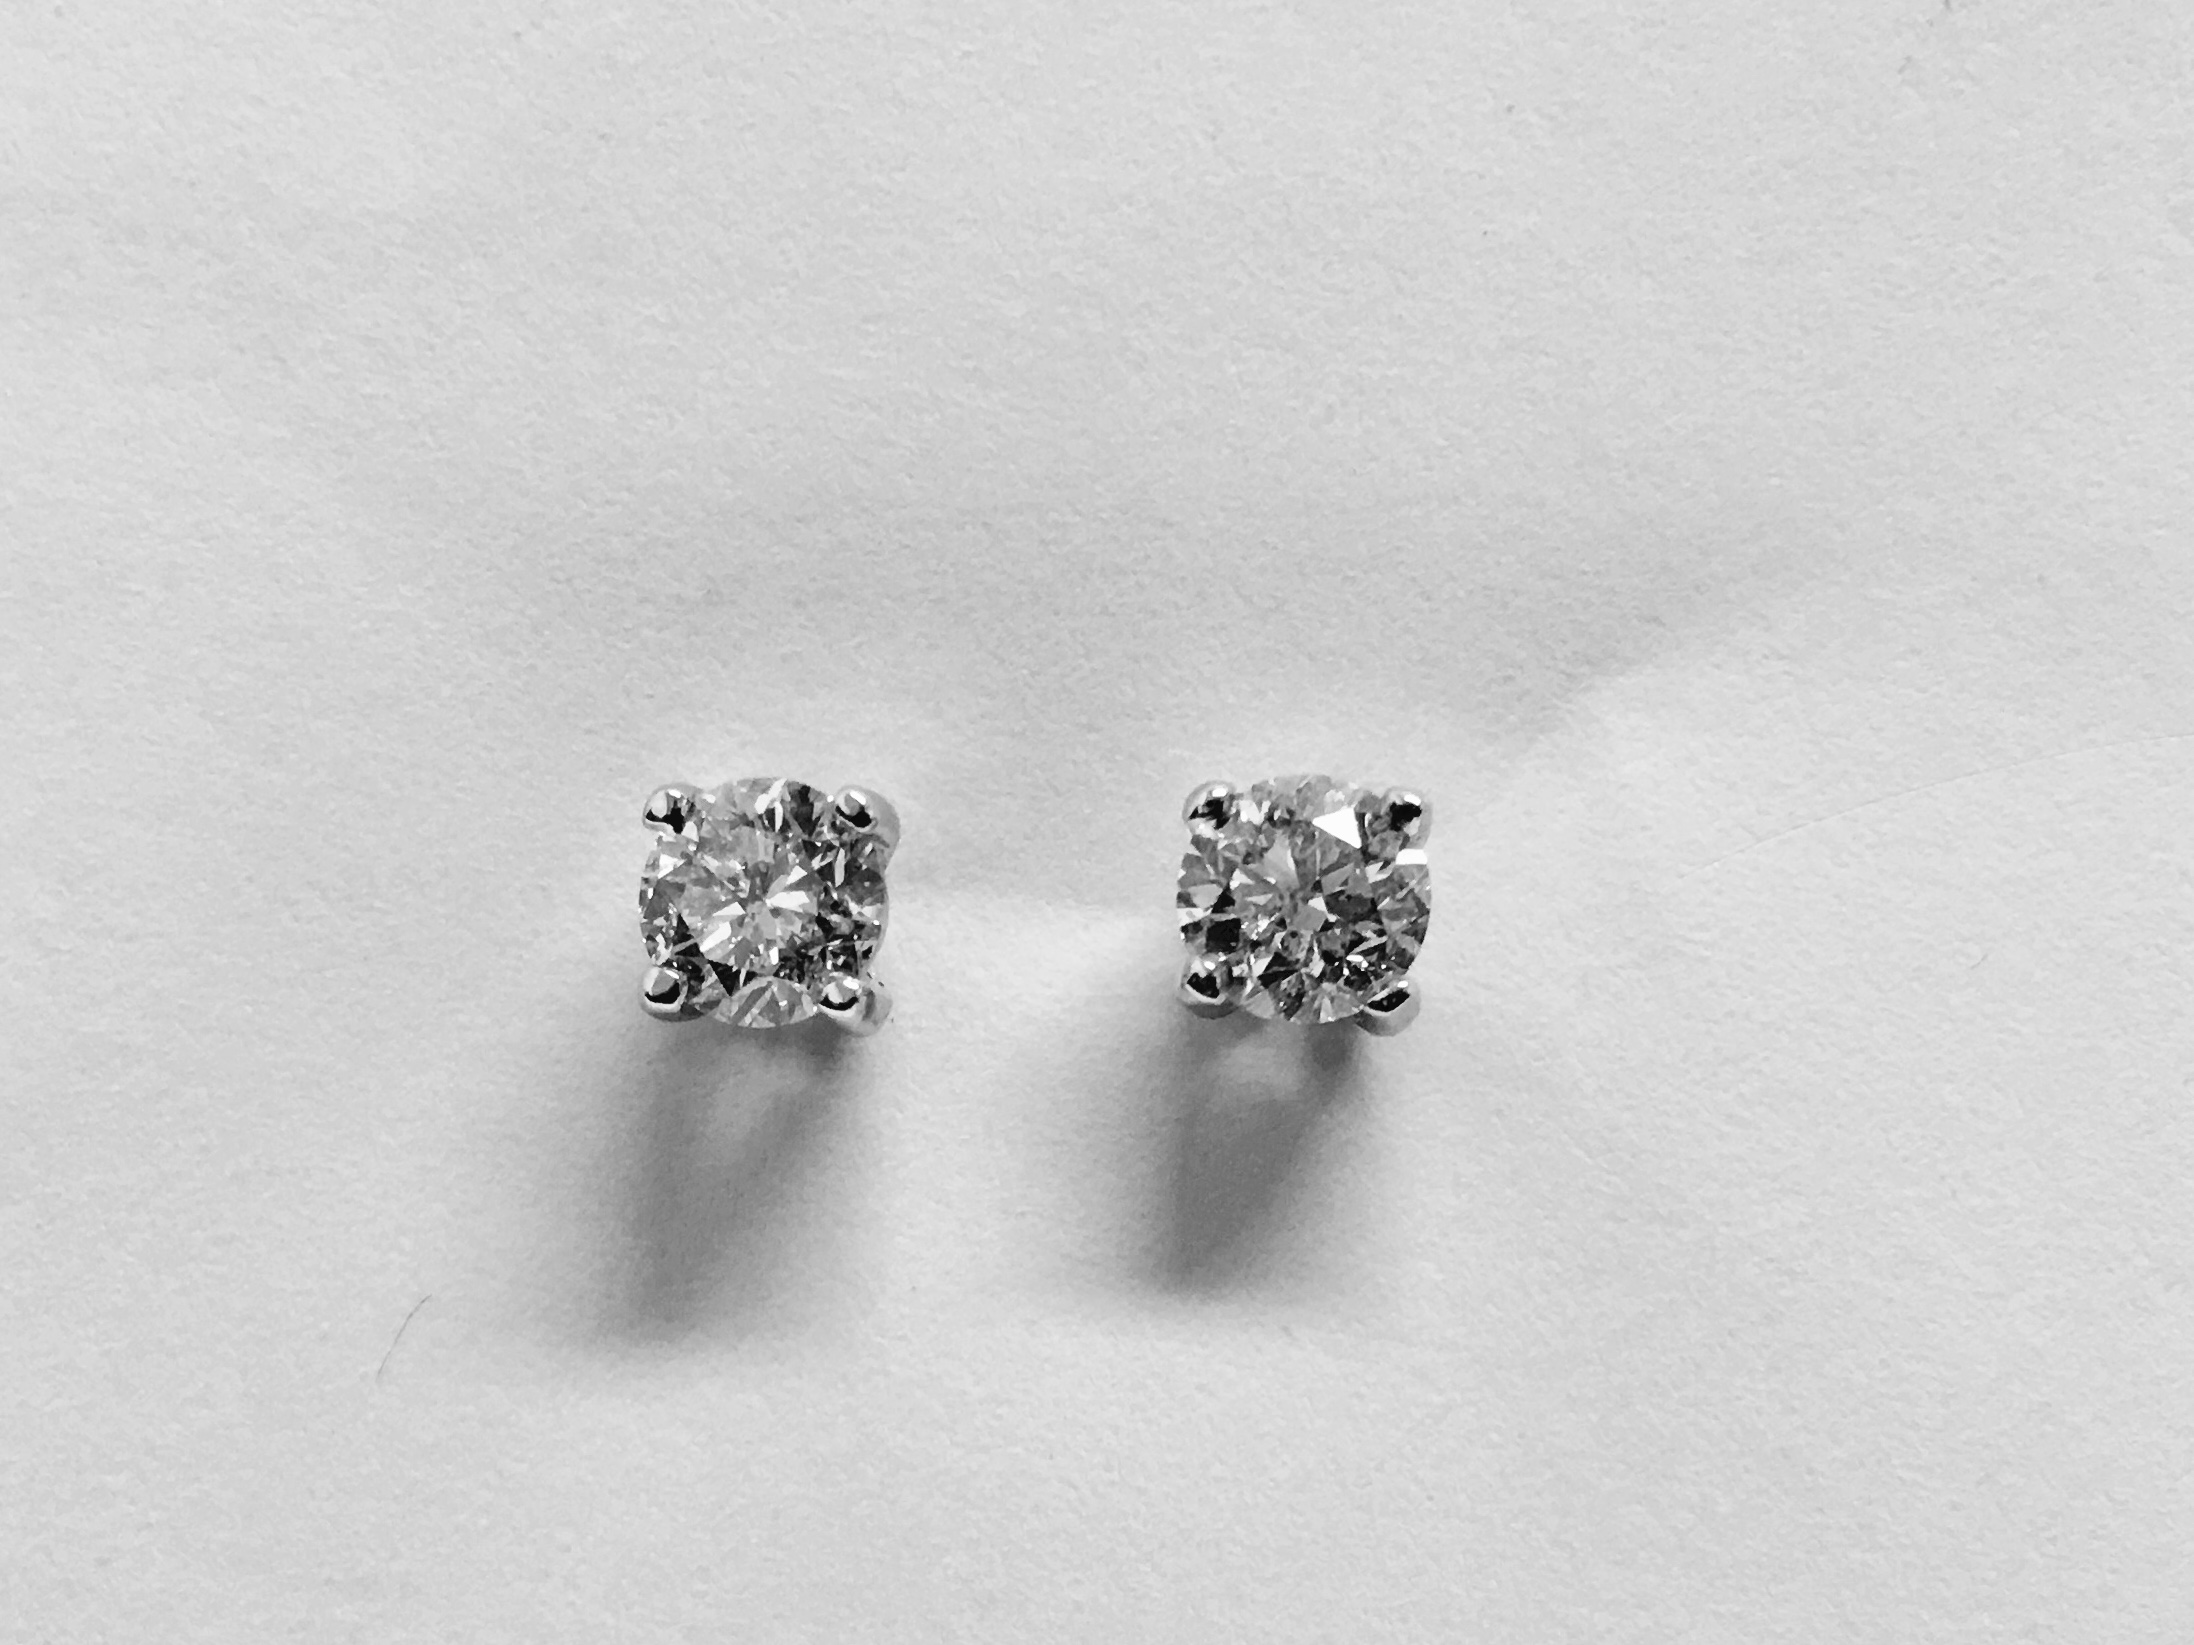 Lot 7 - 0.60ct Solitaire diamond stud earrings set with brilliant cut diamonds, SI2 clarity and I colour.